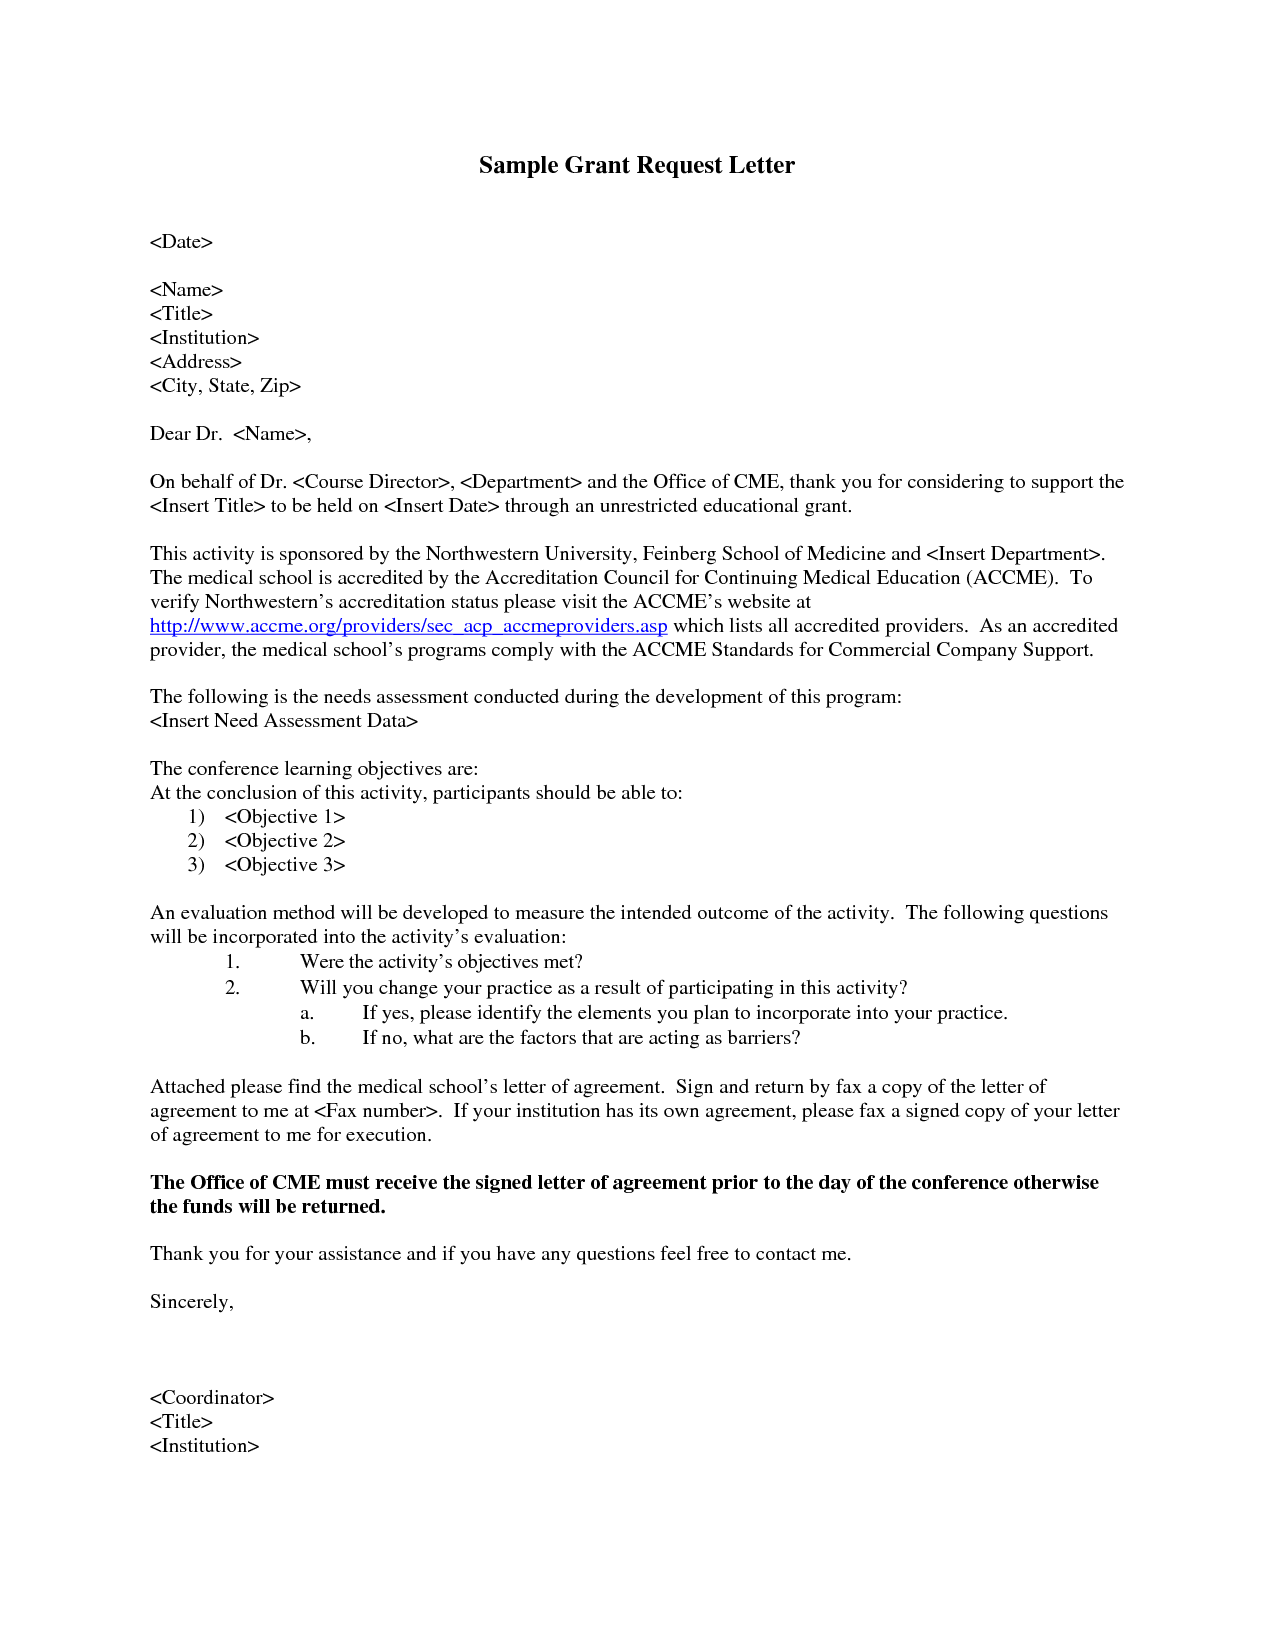 grant request letter write a grant request letter private funding is often available without - Grant Cover Letter Example